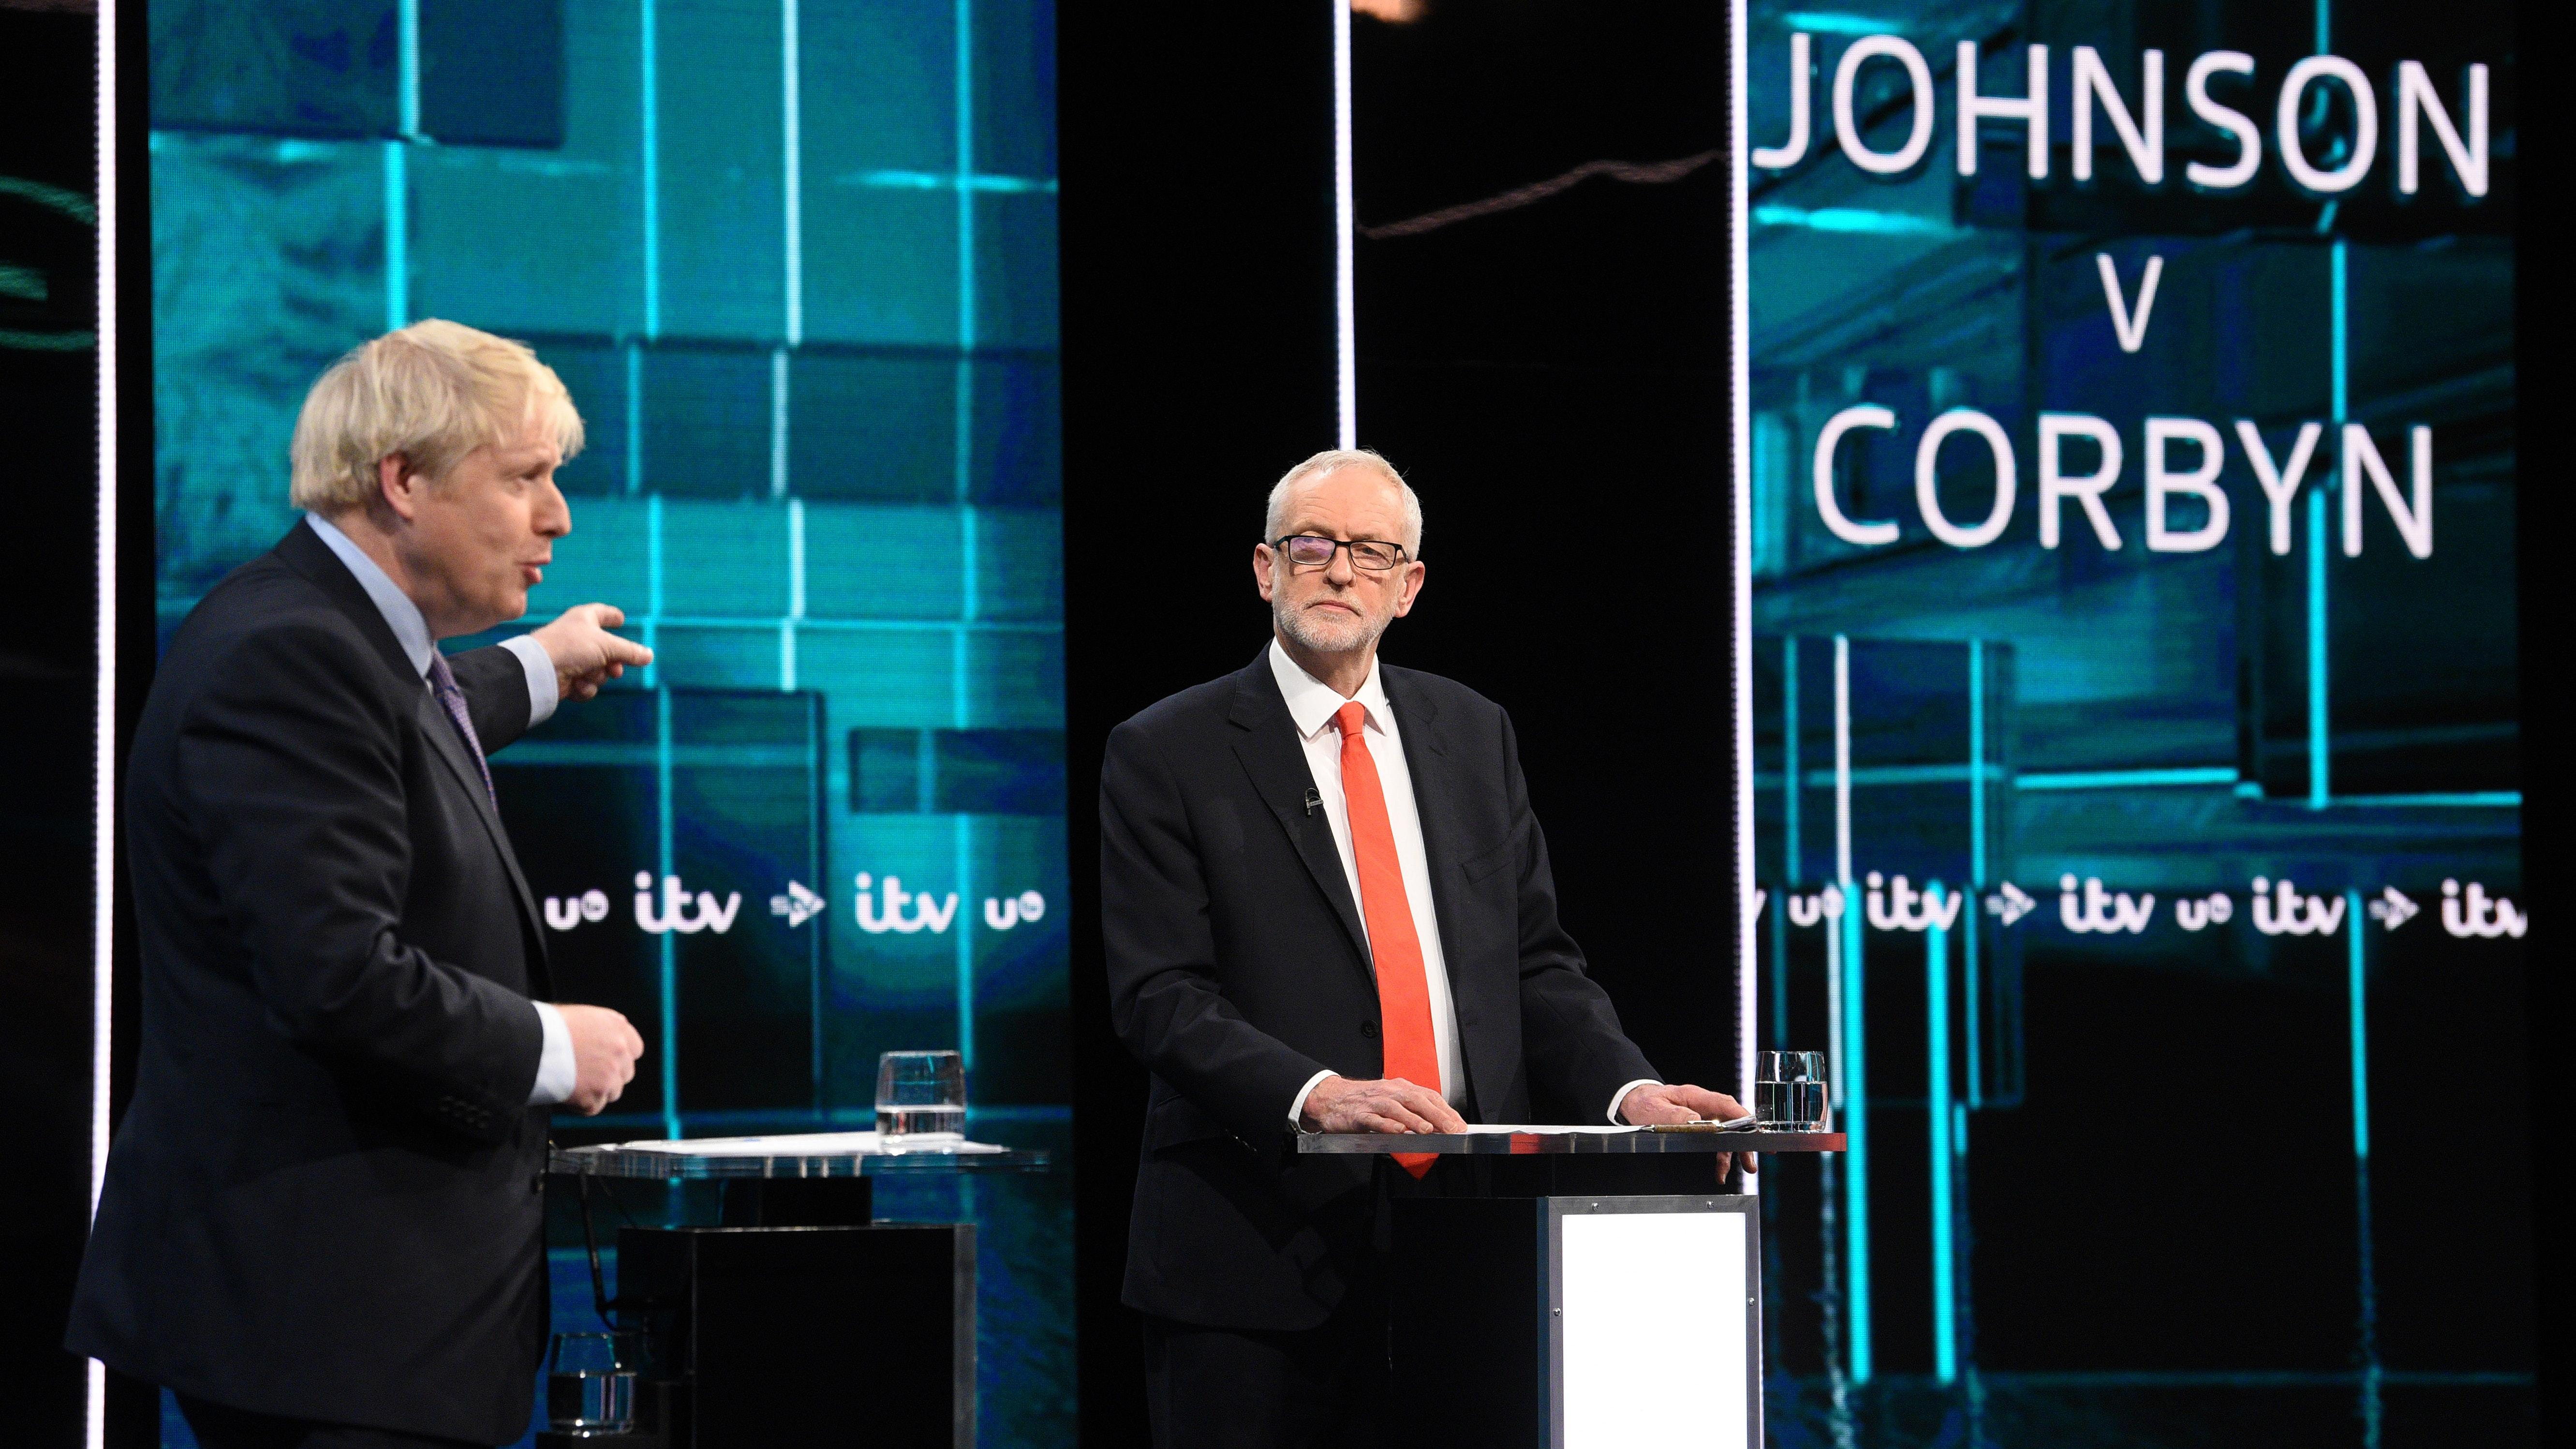 Johnson and Corbyn clash over Brexit in first TV debate of General Election